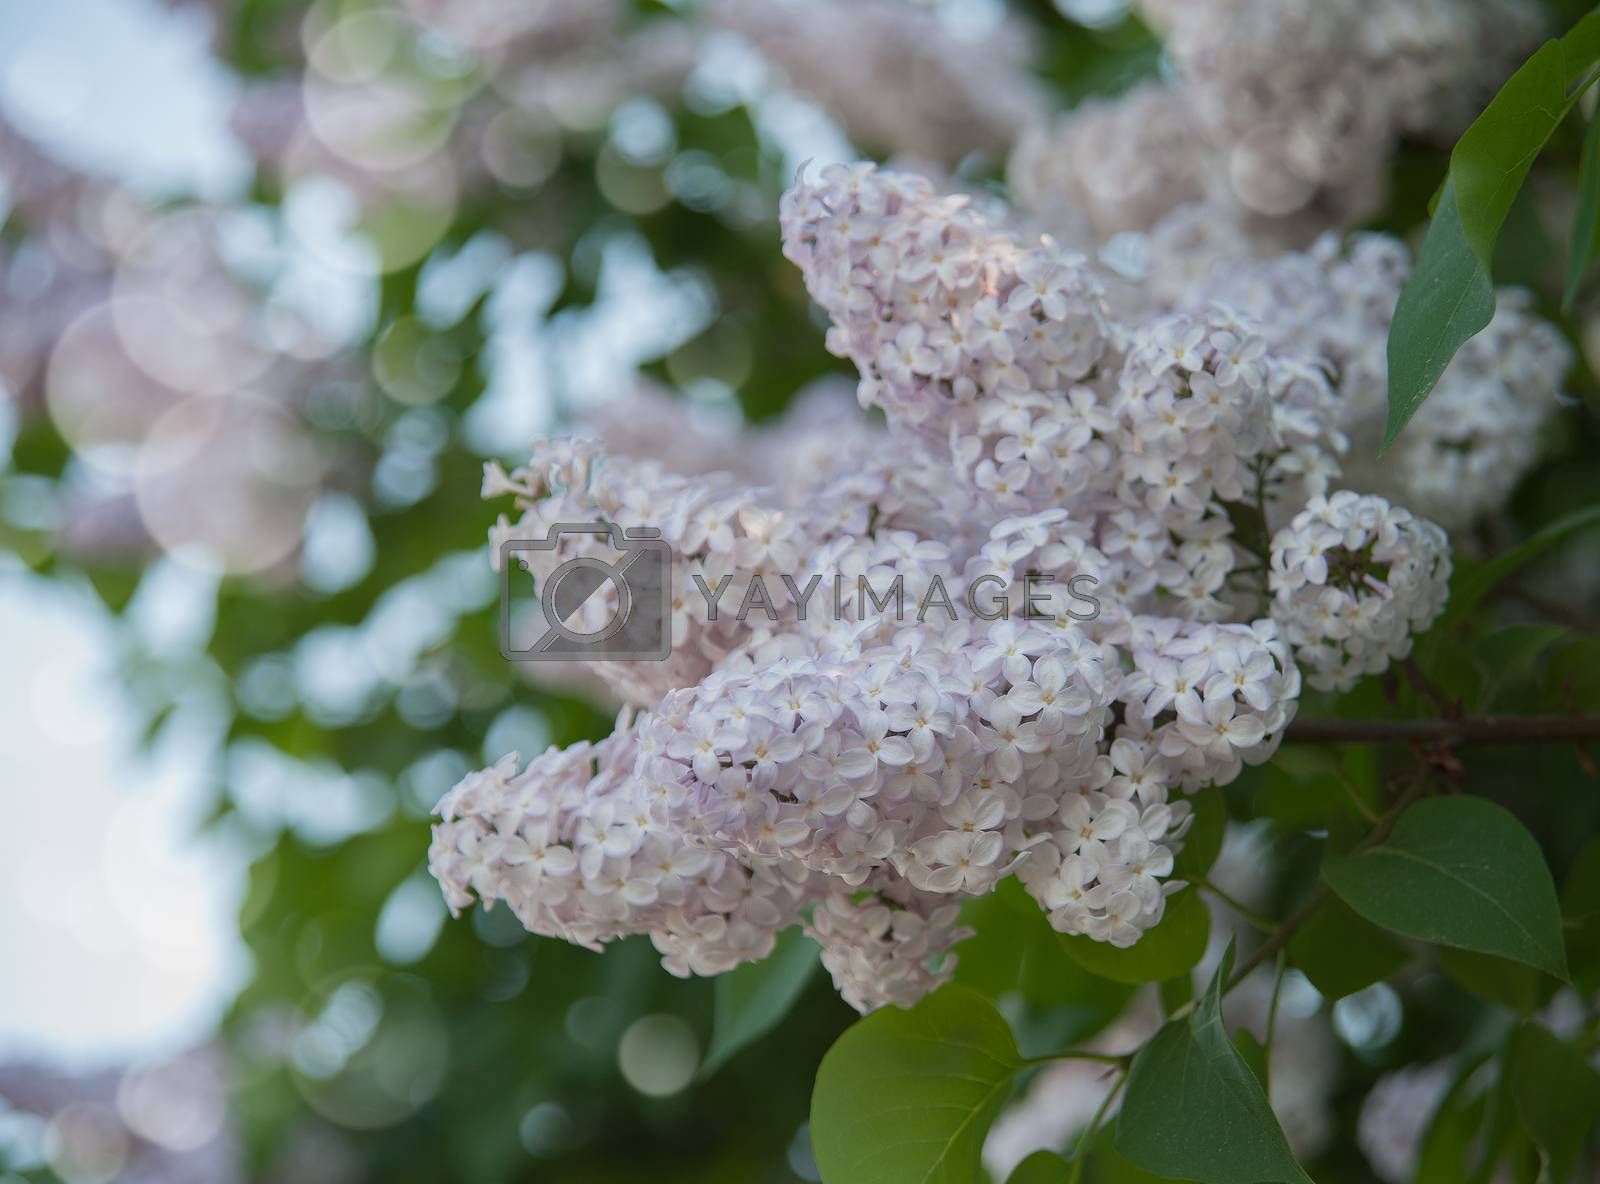 Royalty free image of branch of lilac by raduga21